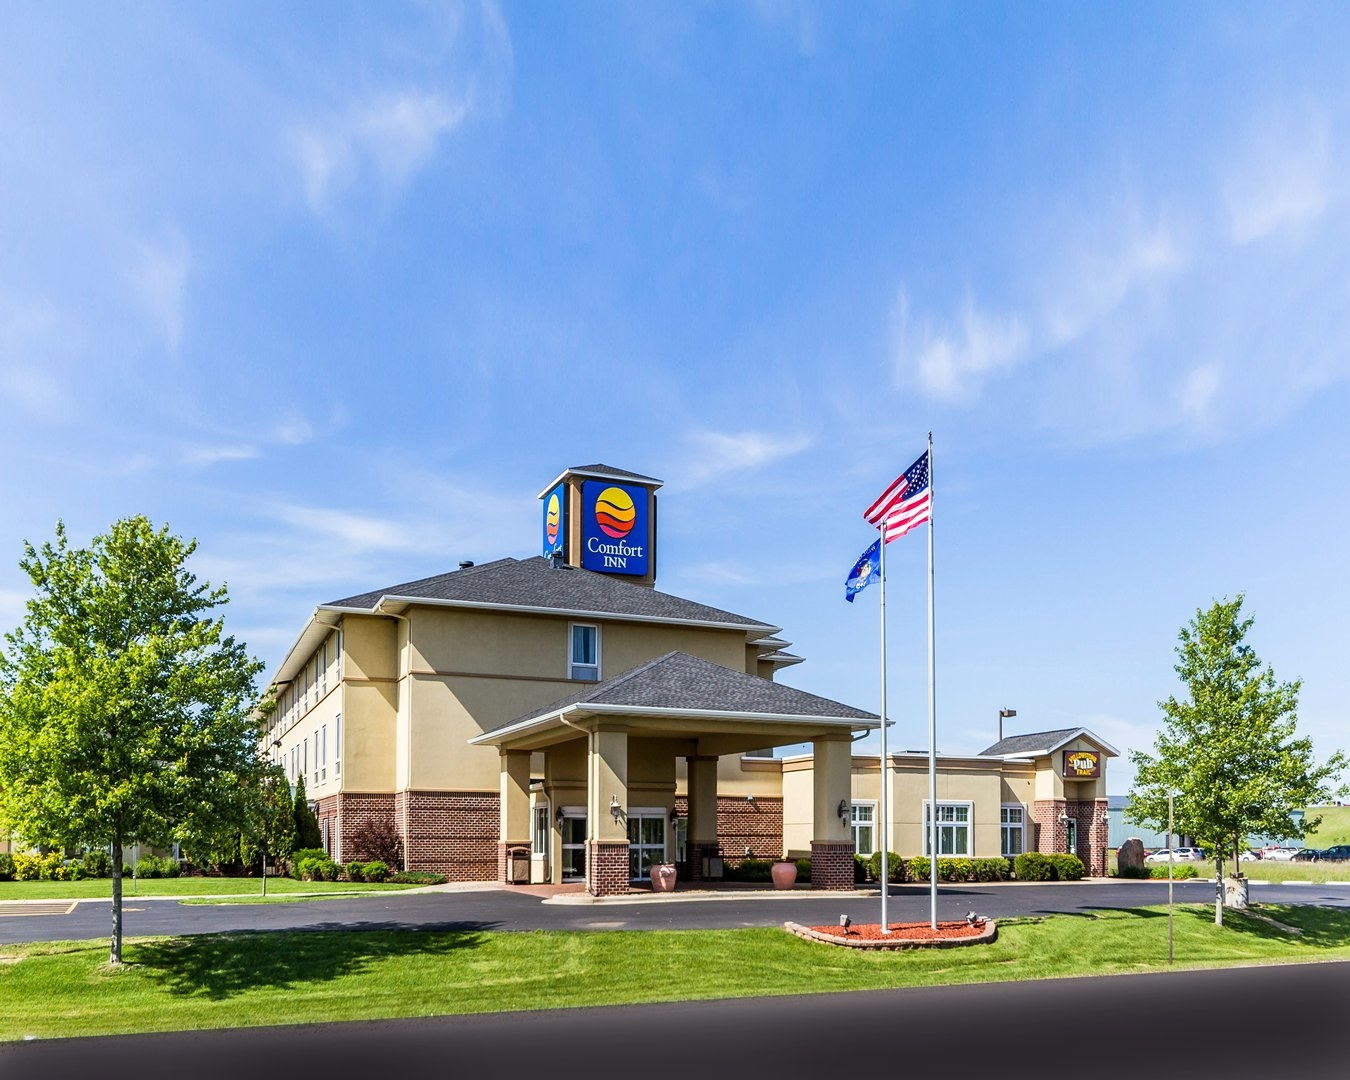 Comfort Inn In Plover Wi 54467 Chamberofcommerce Com